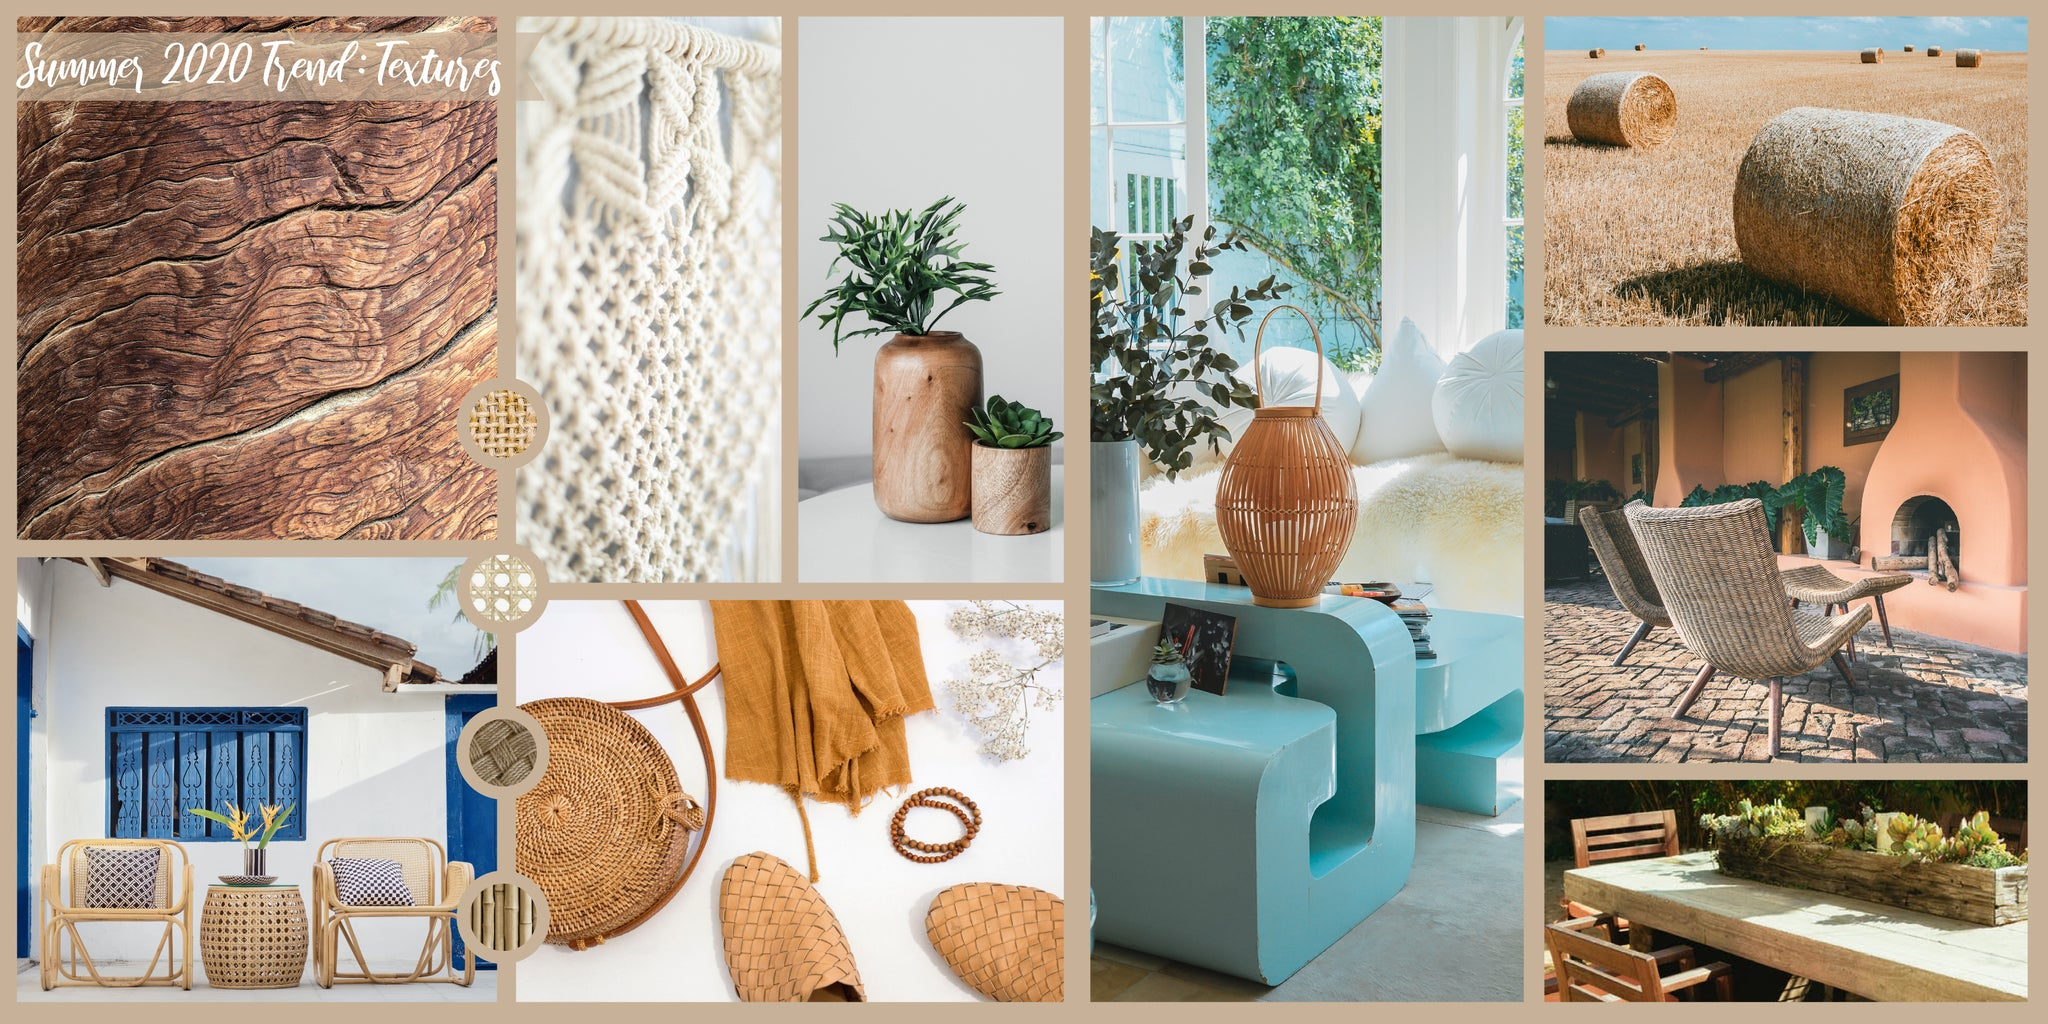 Summer 2020 Decor Trends: Texture | Patio Essentials